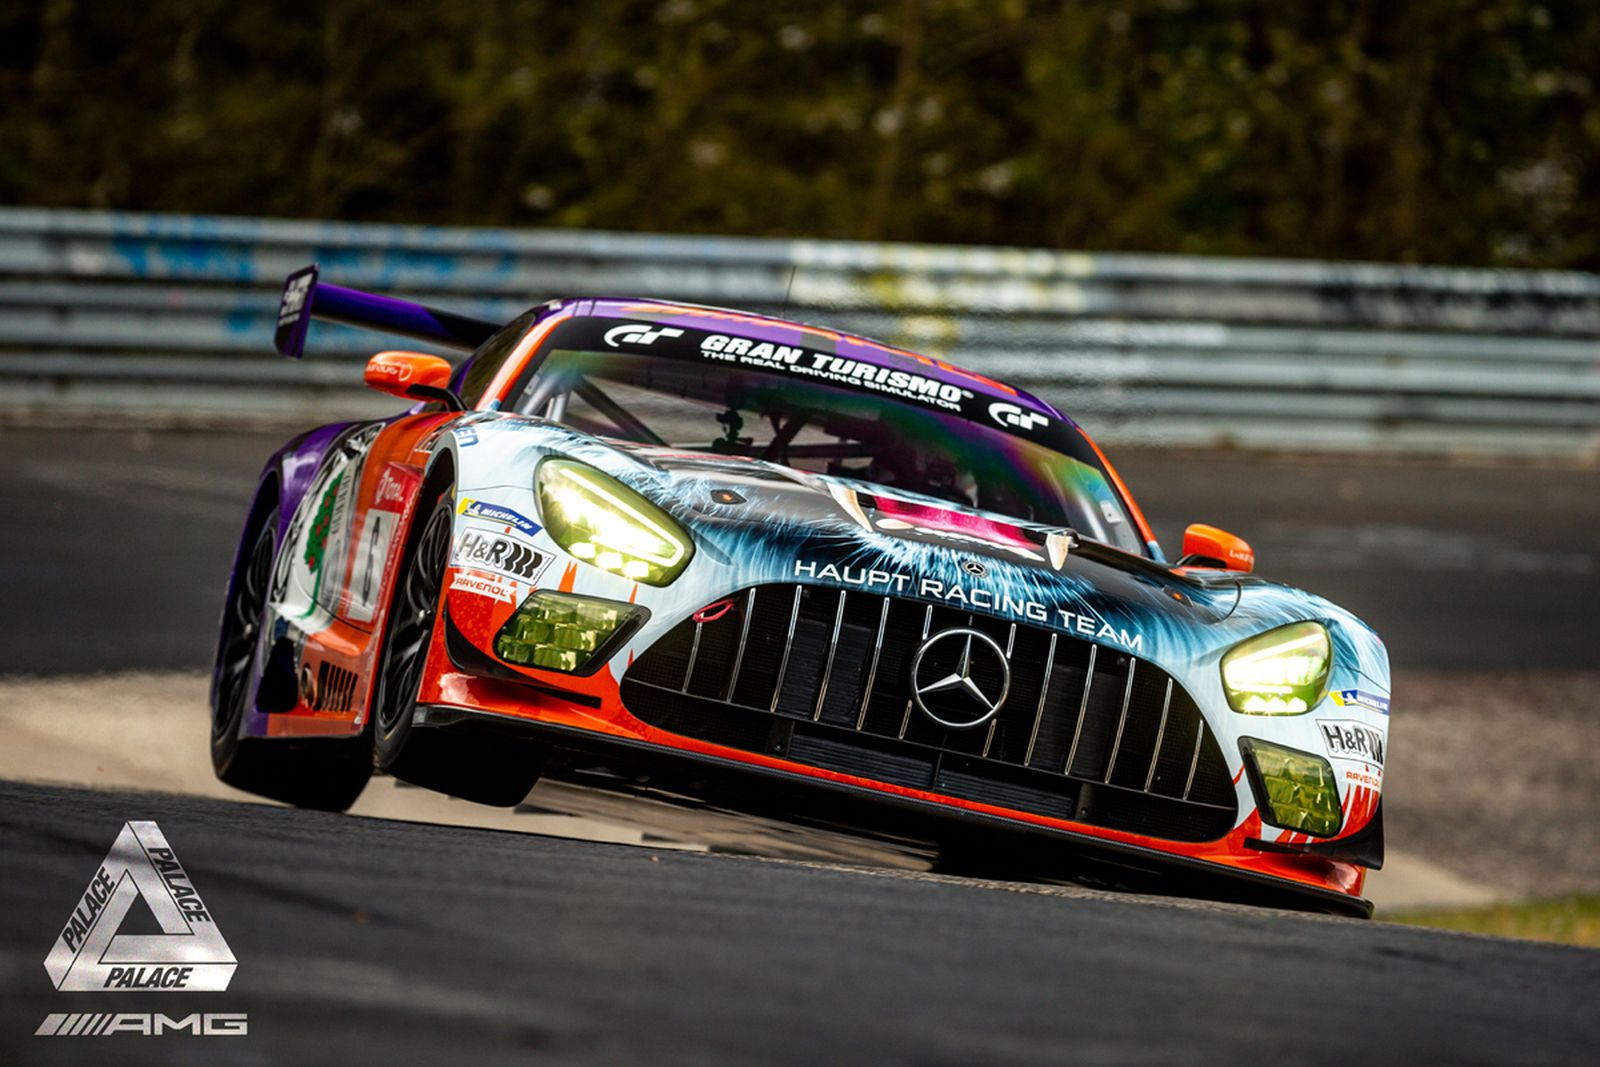 PALACE mercedes AMG gt3 collab (1)